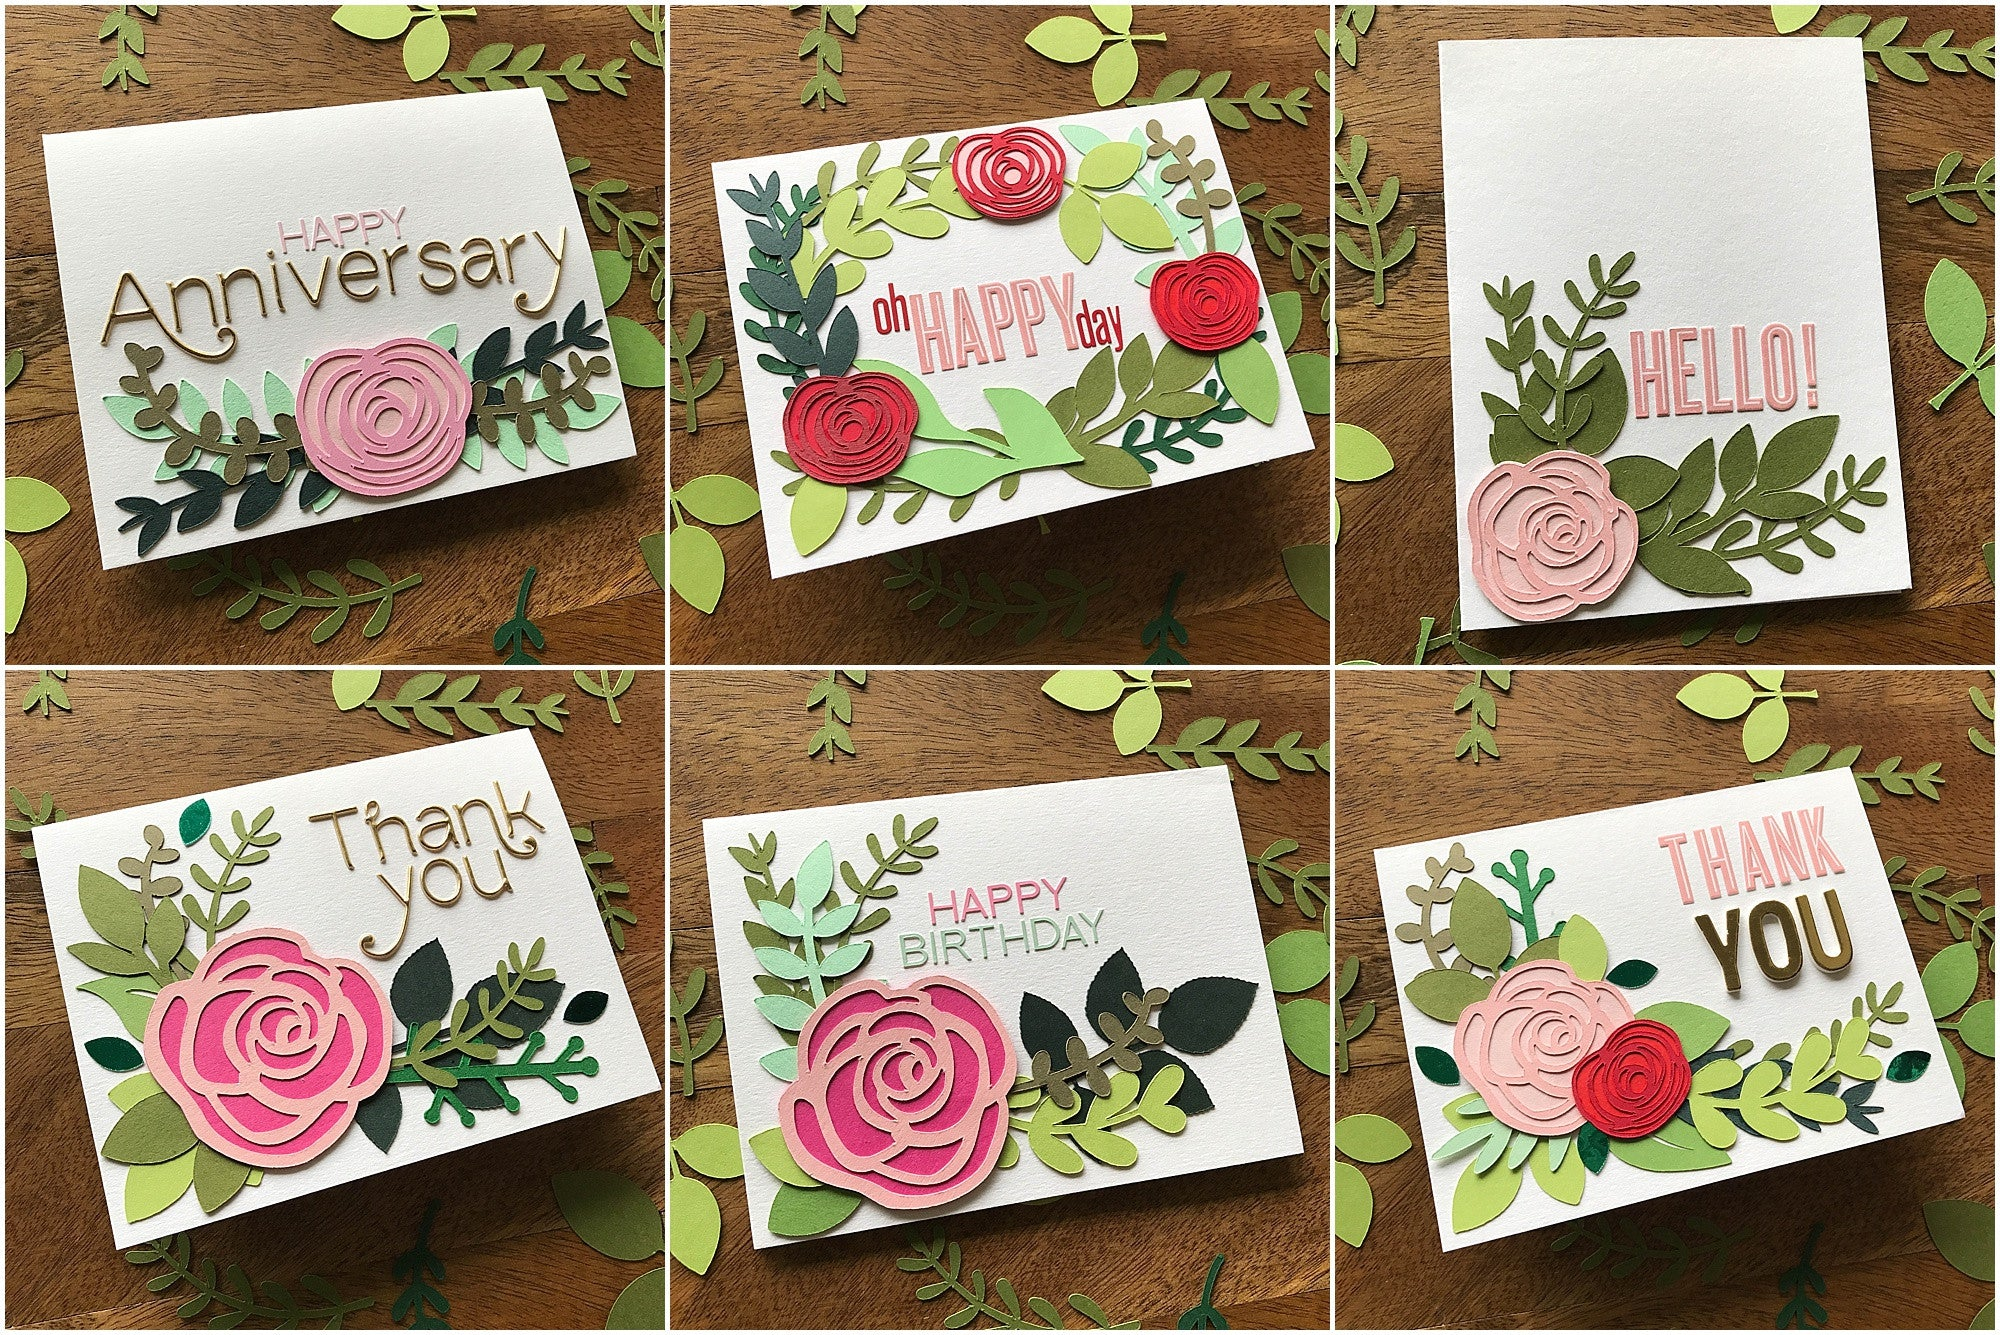 Floral greenery cards made from Cardstock Warehouse paper